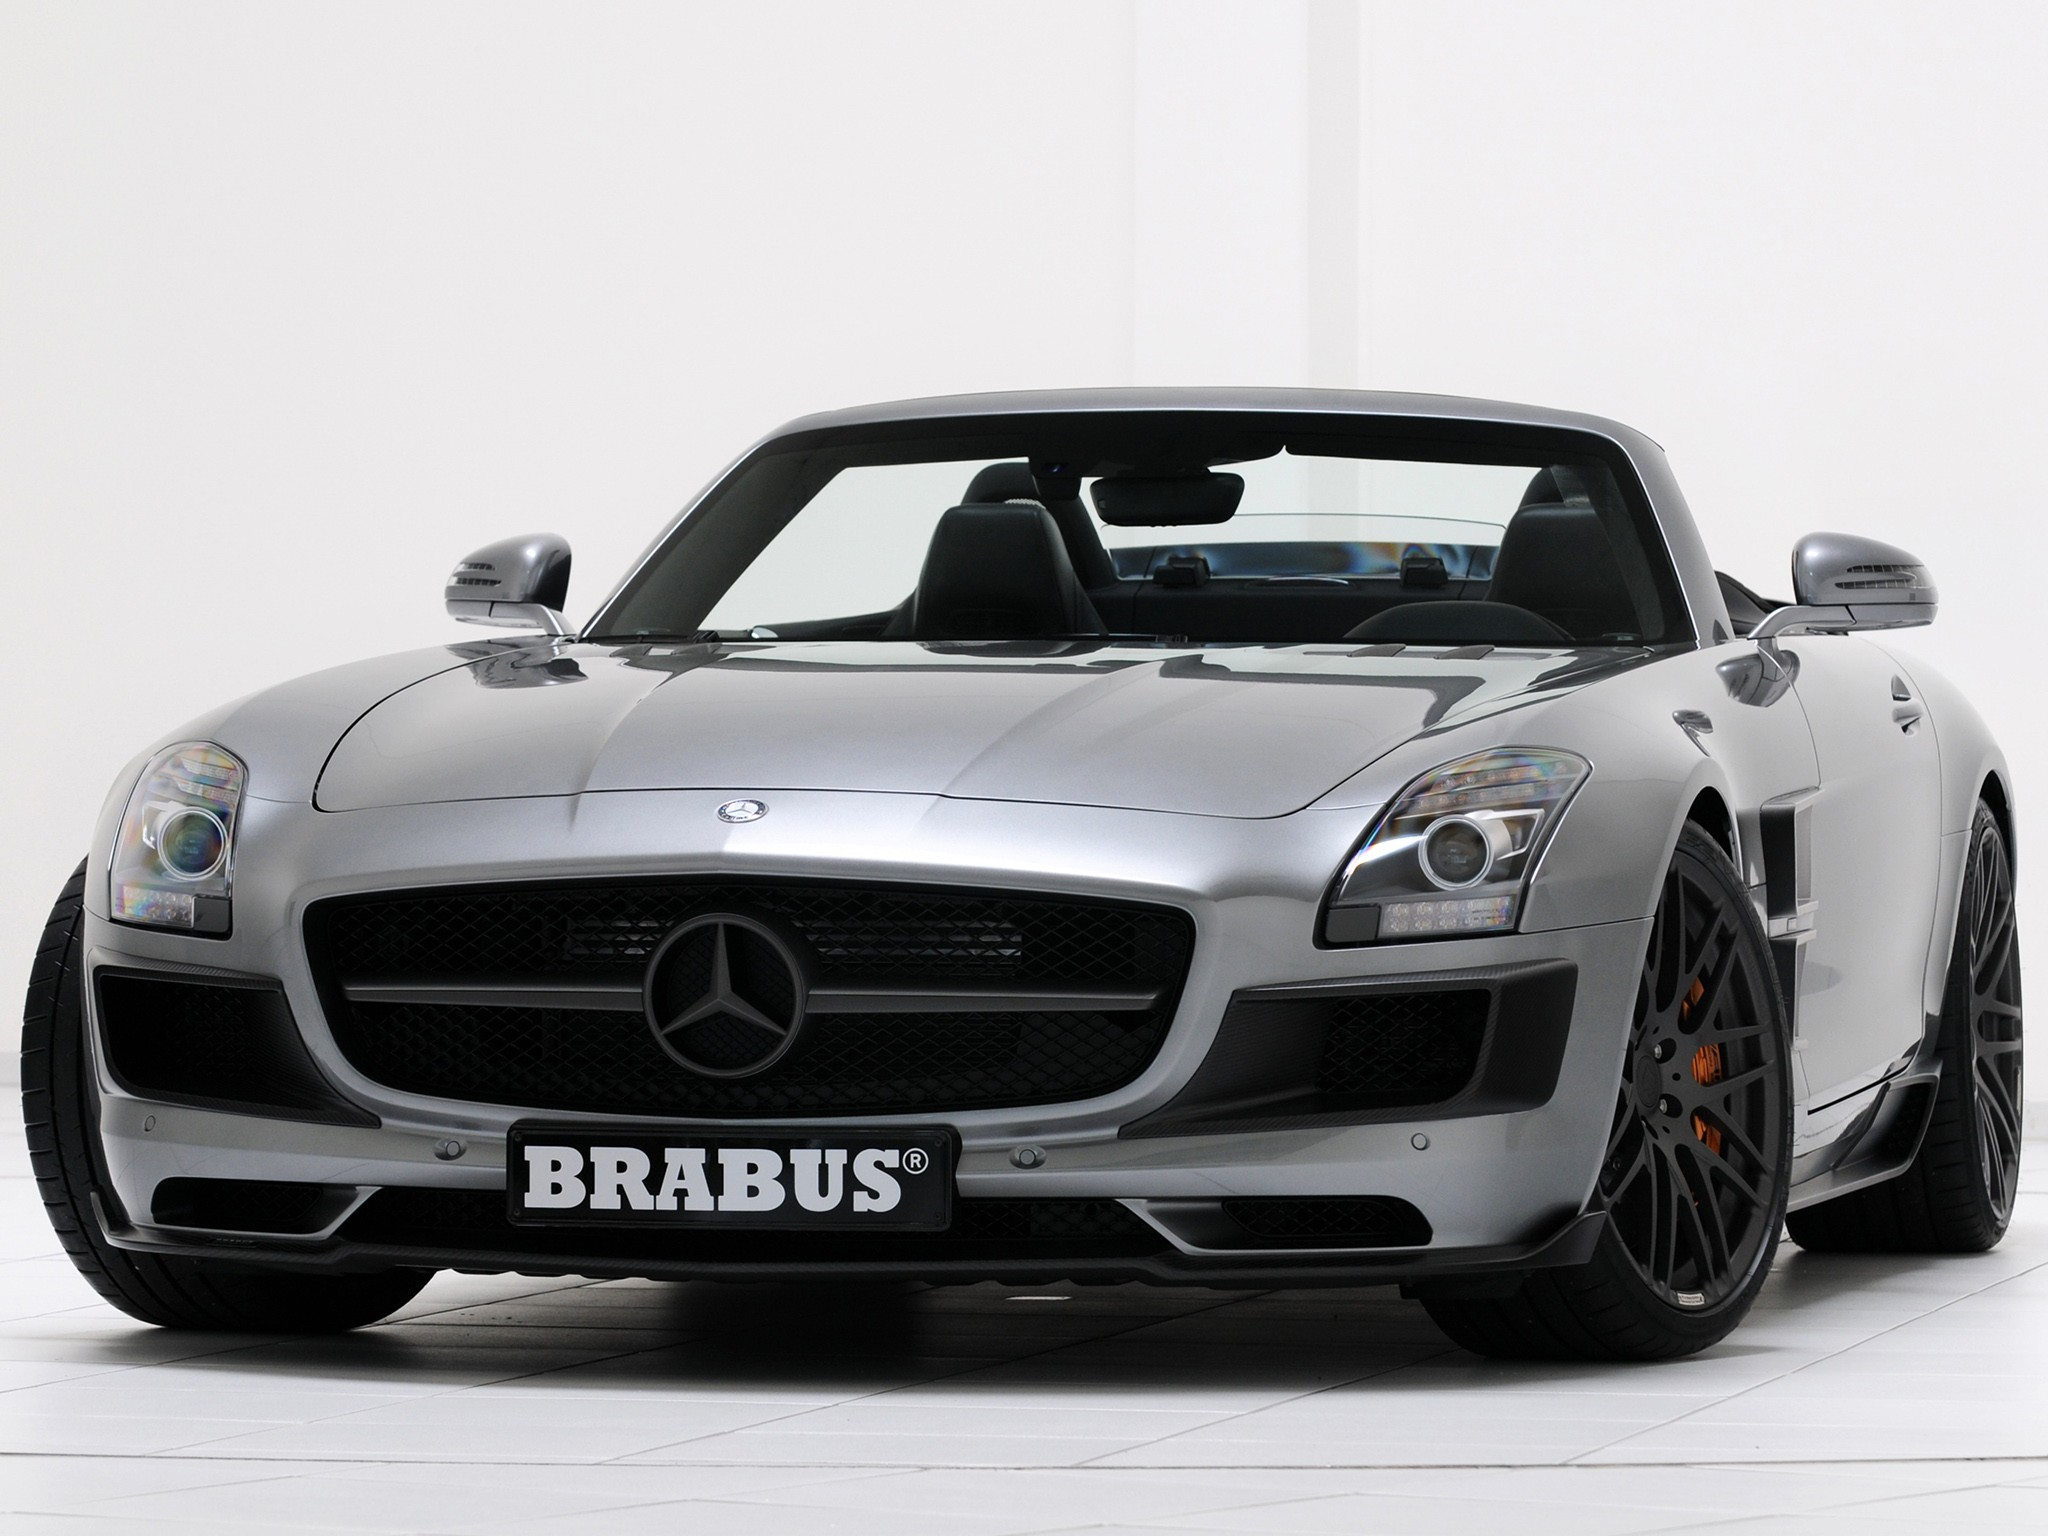 Mercedes benz sls amg roadster specs 2012 2013 2014 for Silverlit mercedes benz sls amg